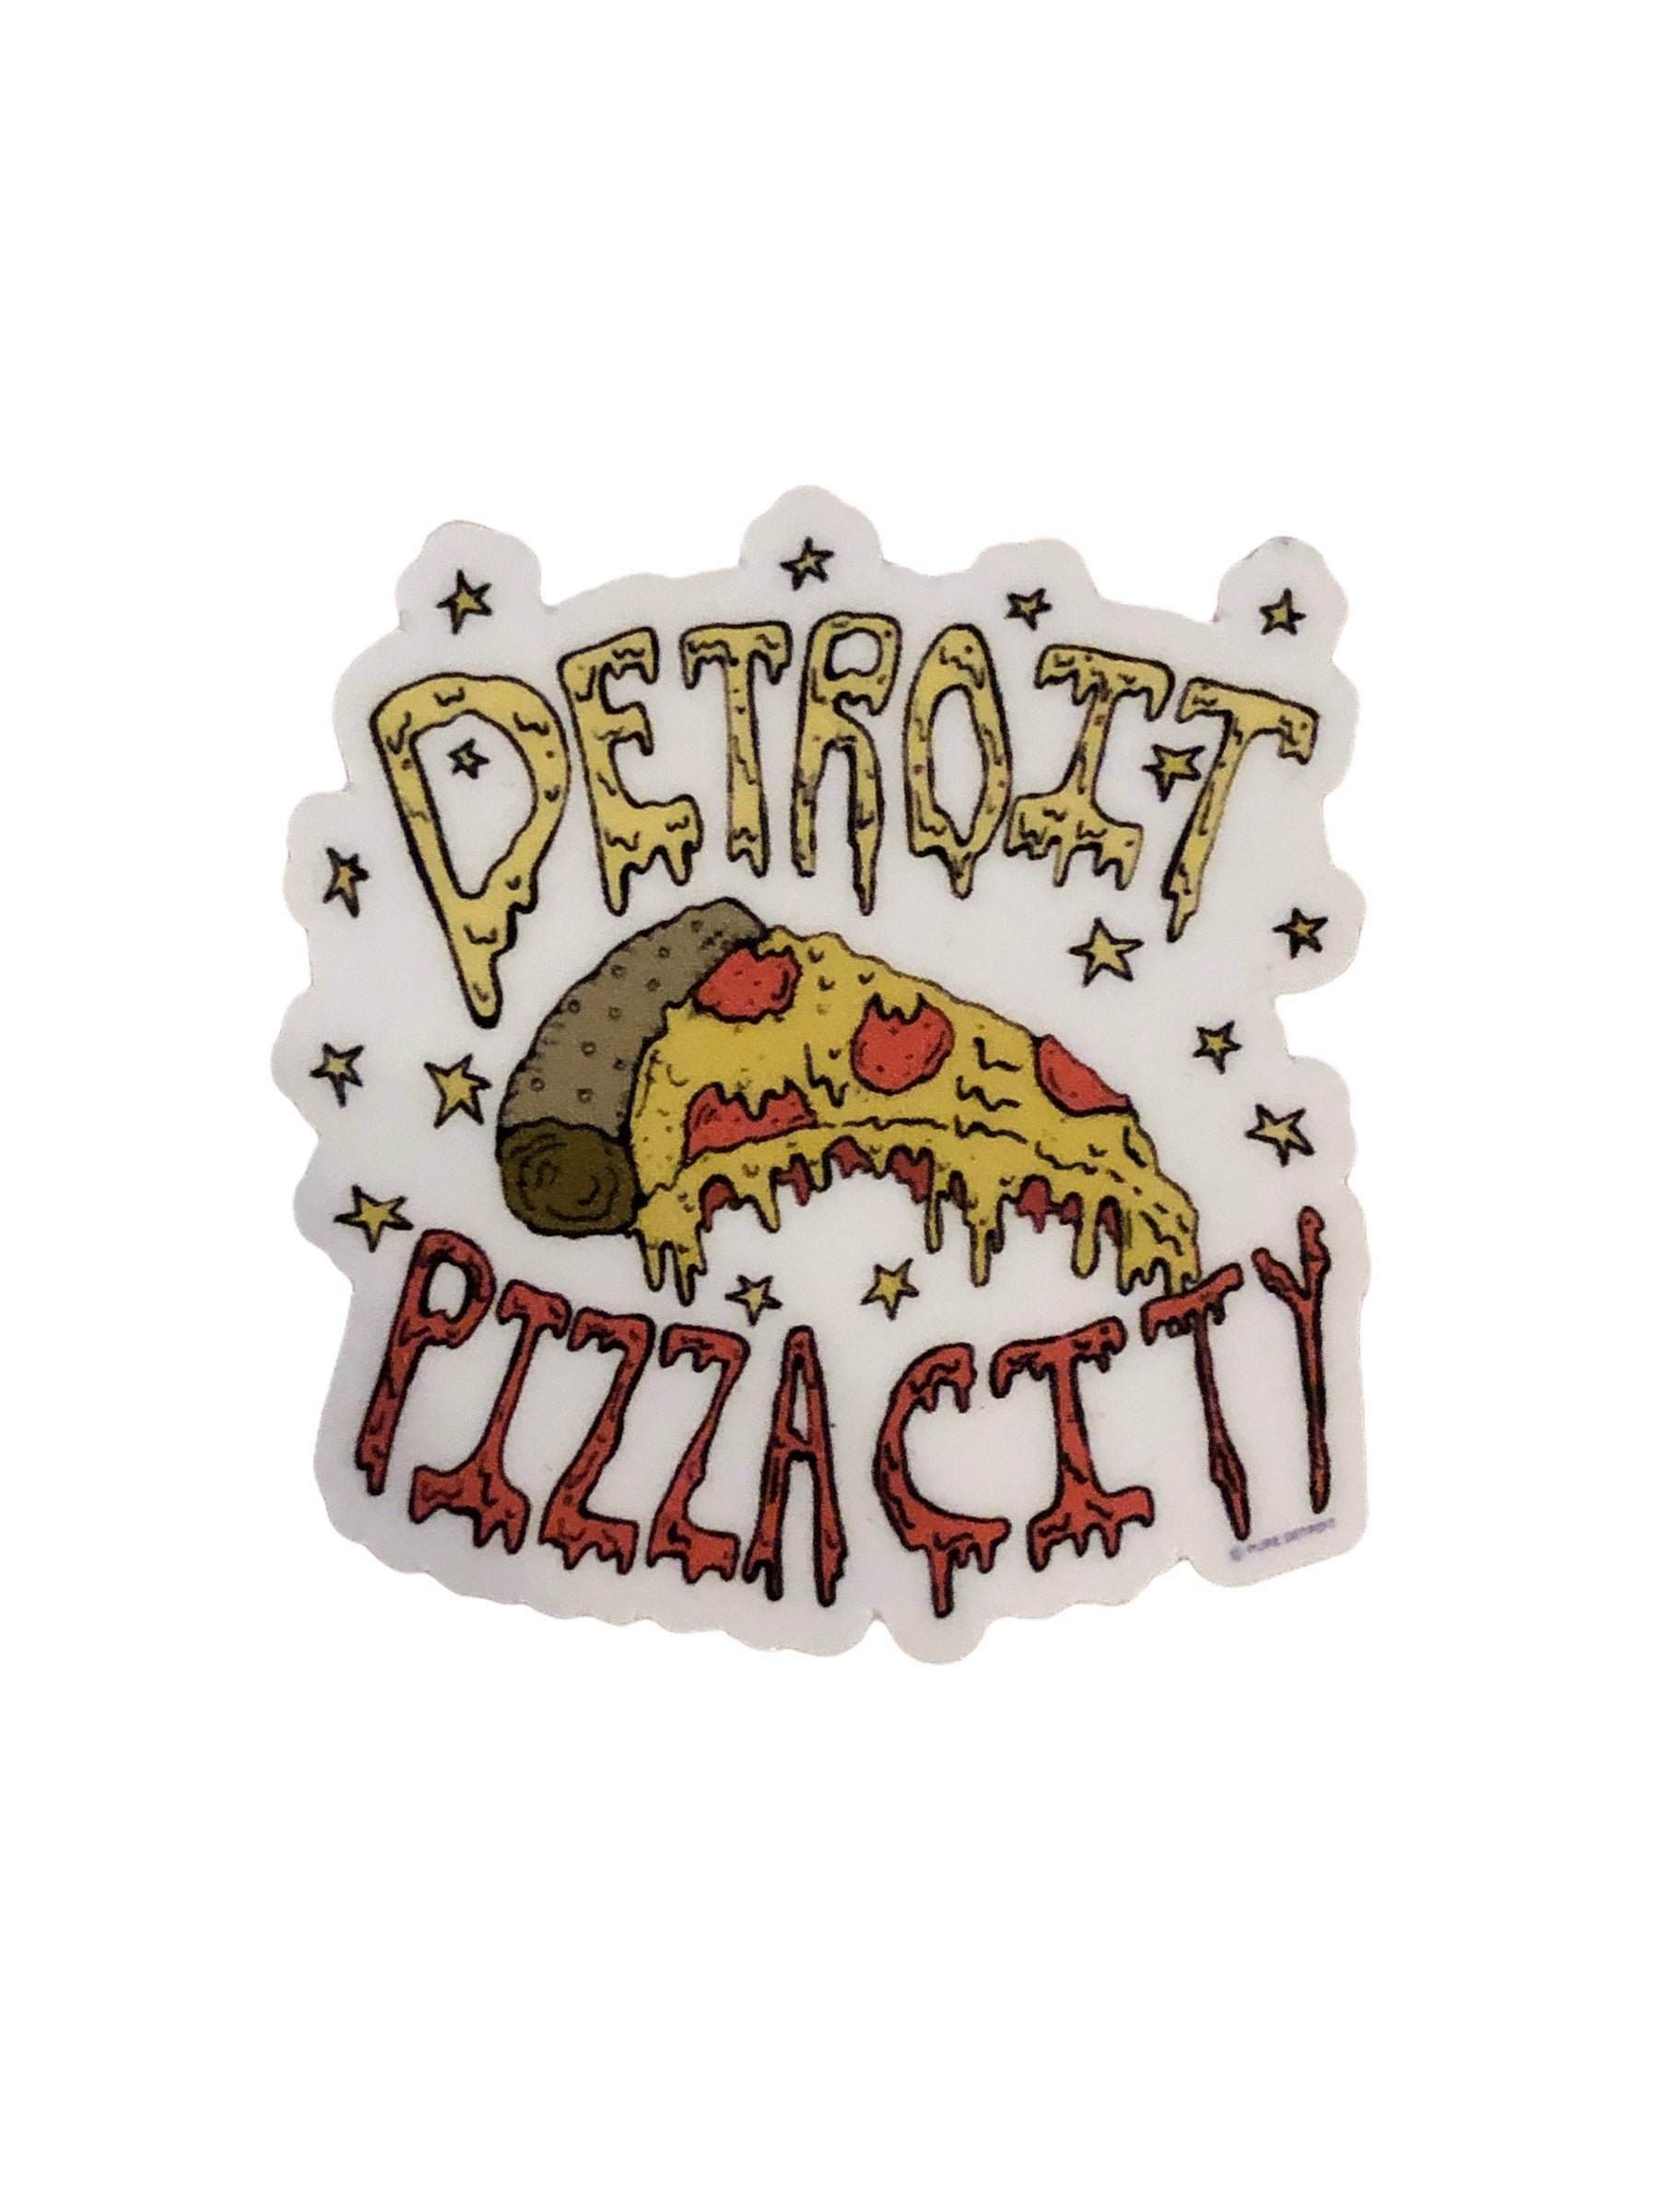 Detroit Pizza City Decal - Pure Detroit